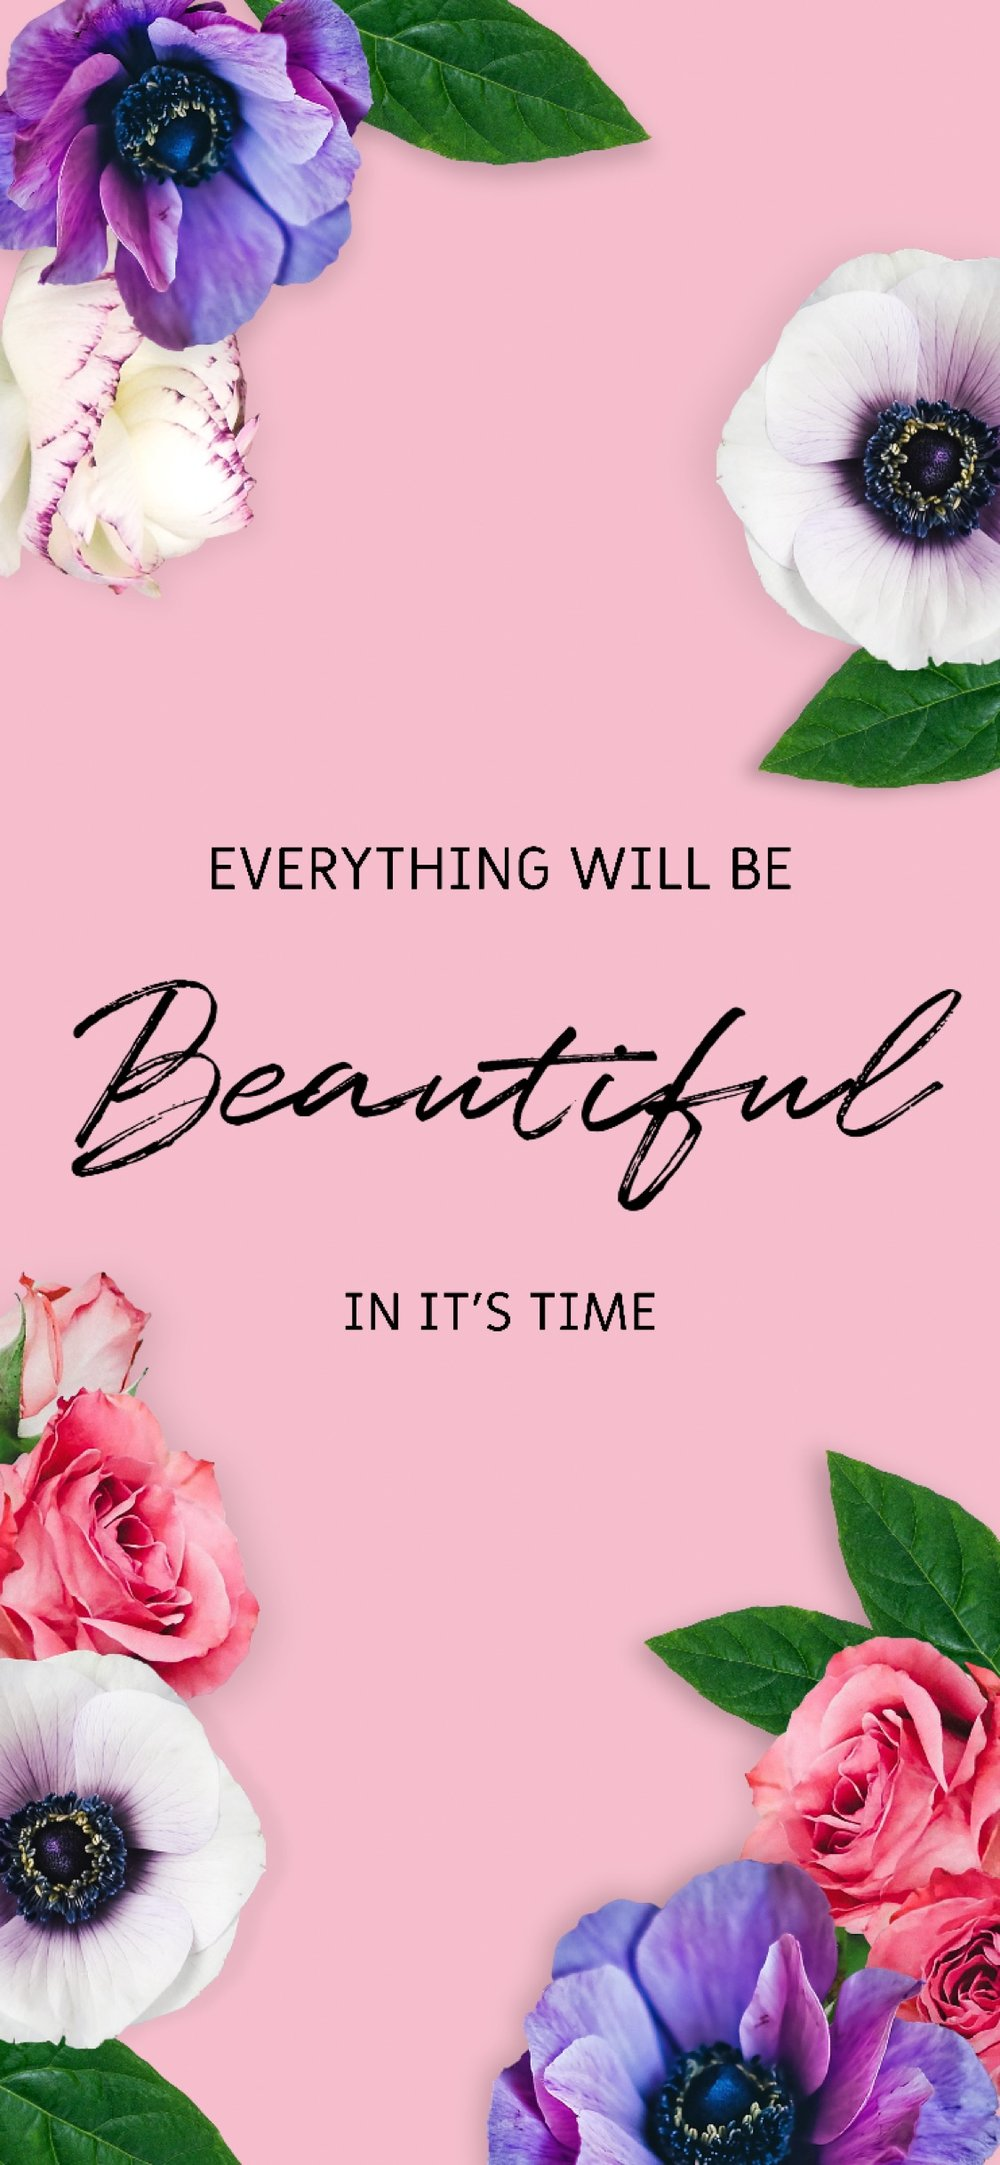 Everything will be Beautiful in it's time